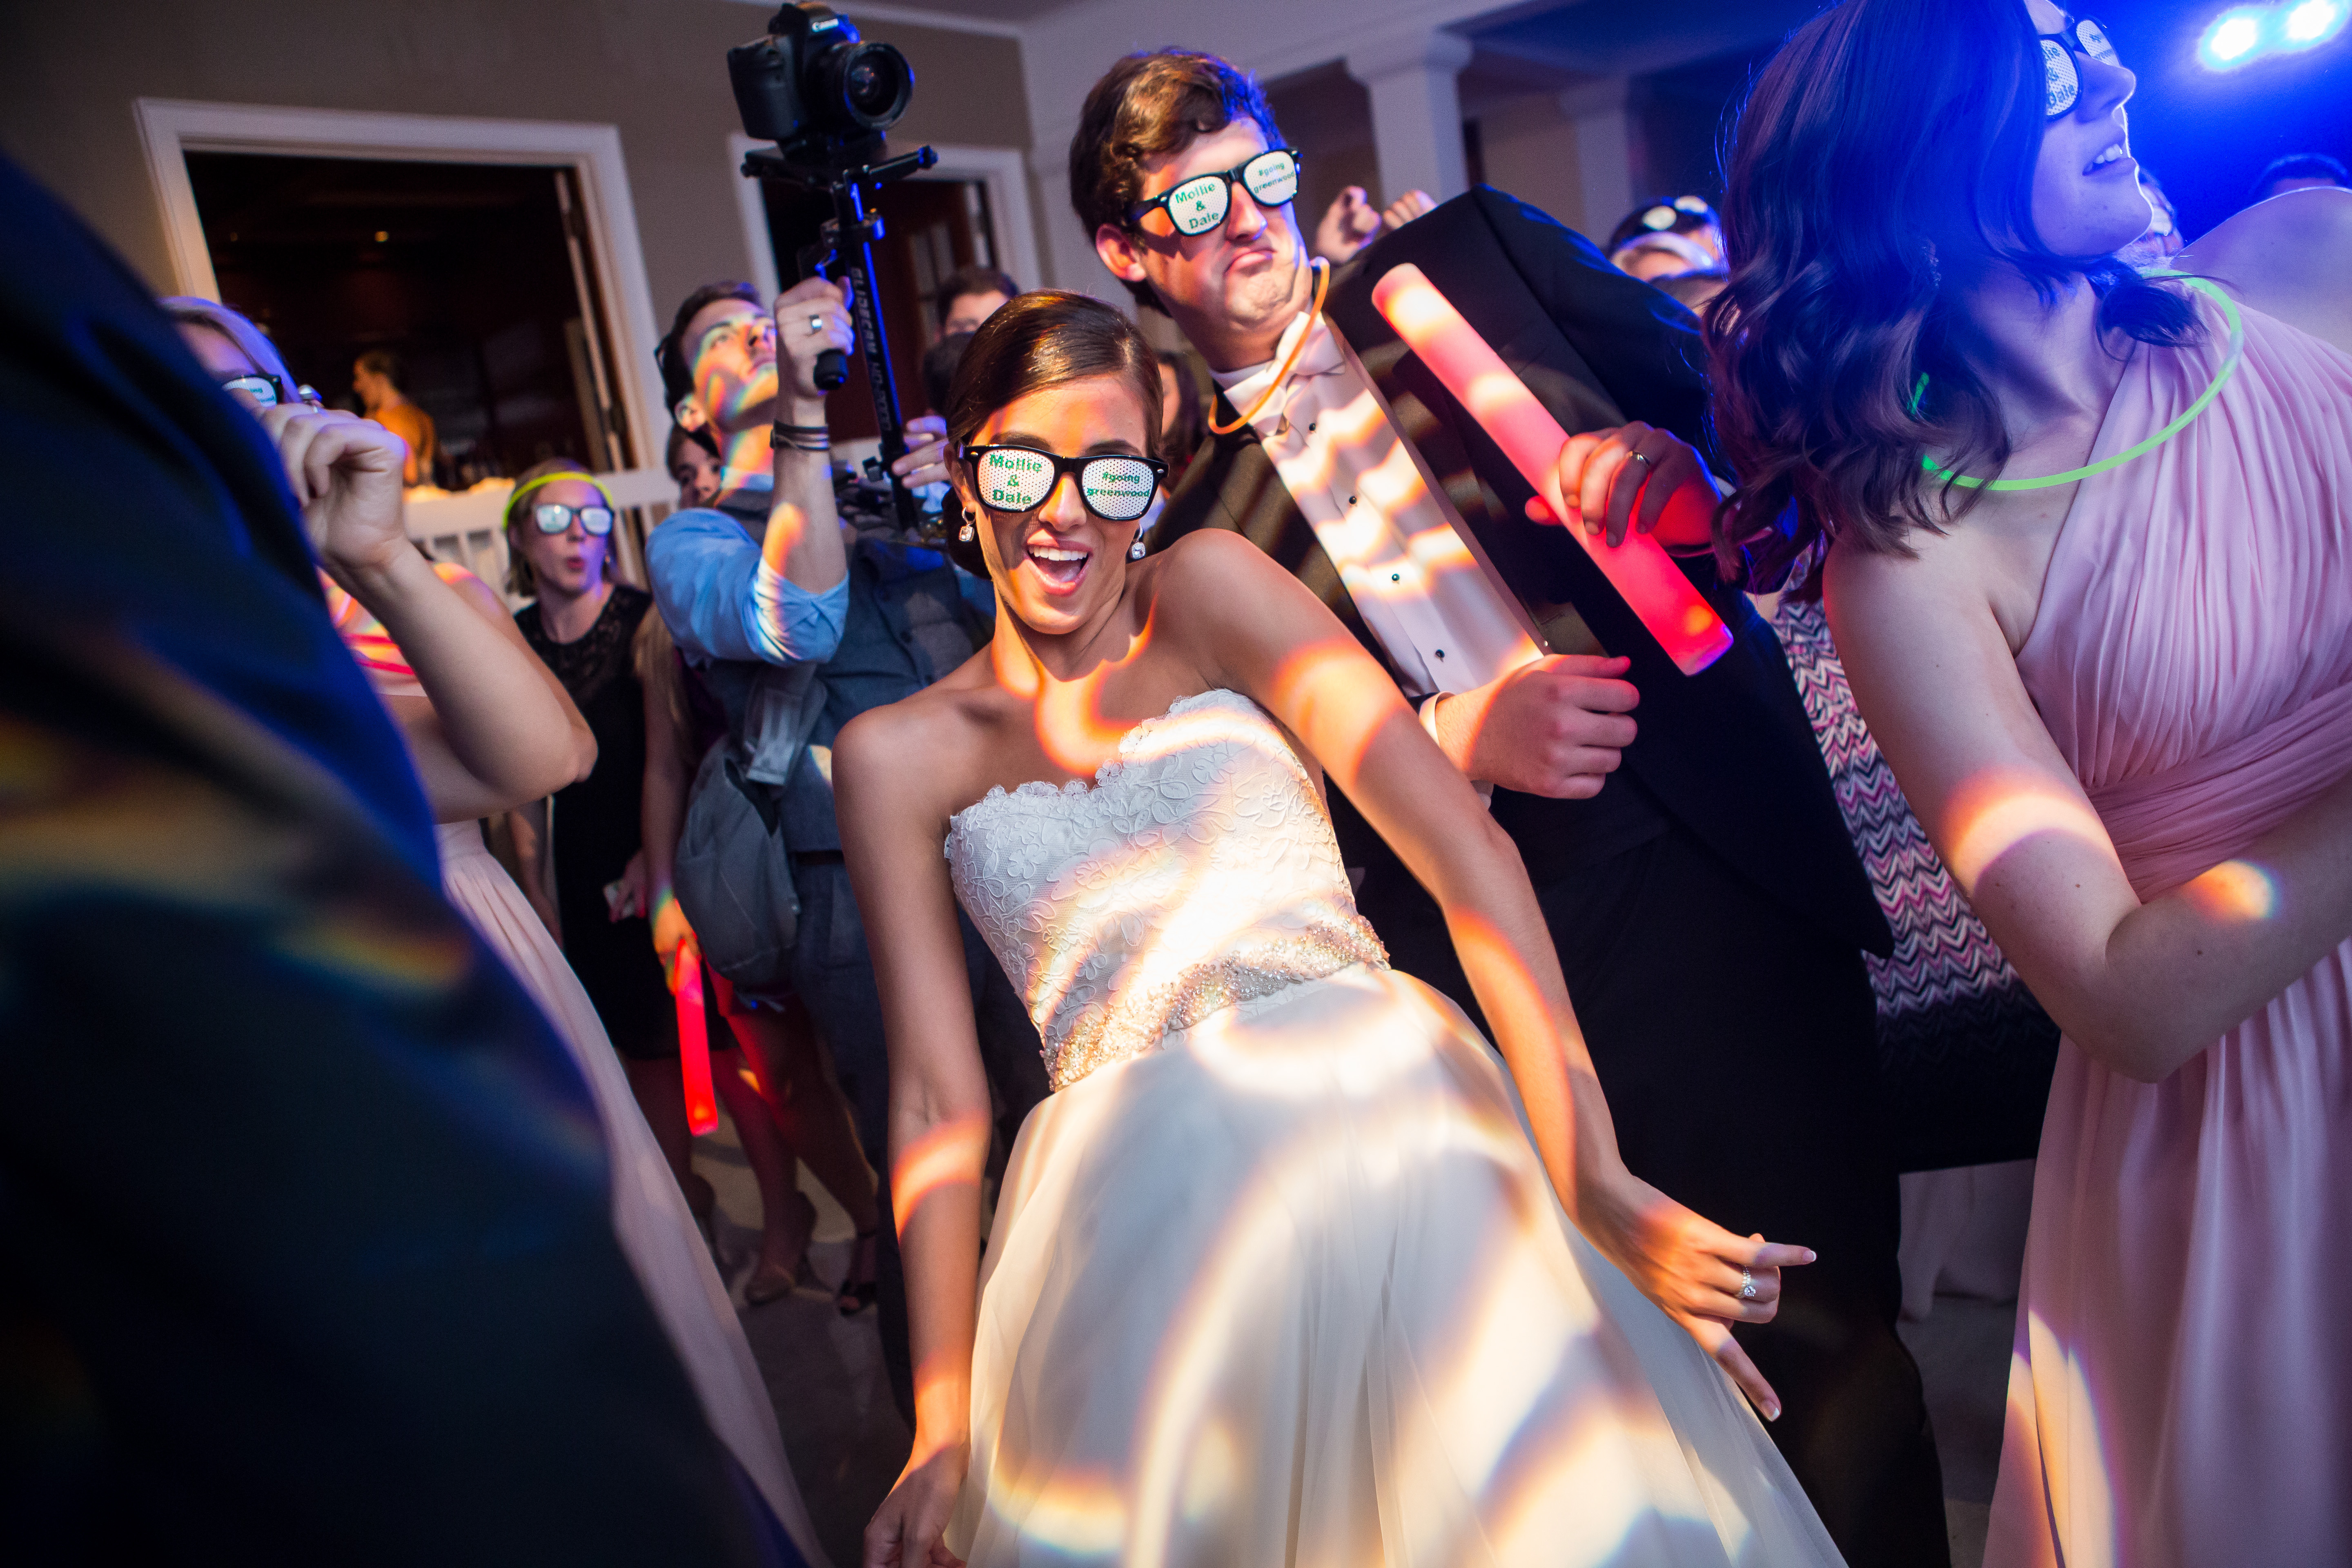 #TipfulTuesday: Keeping The Party Alive